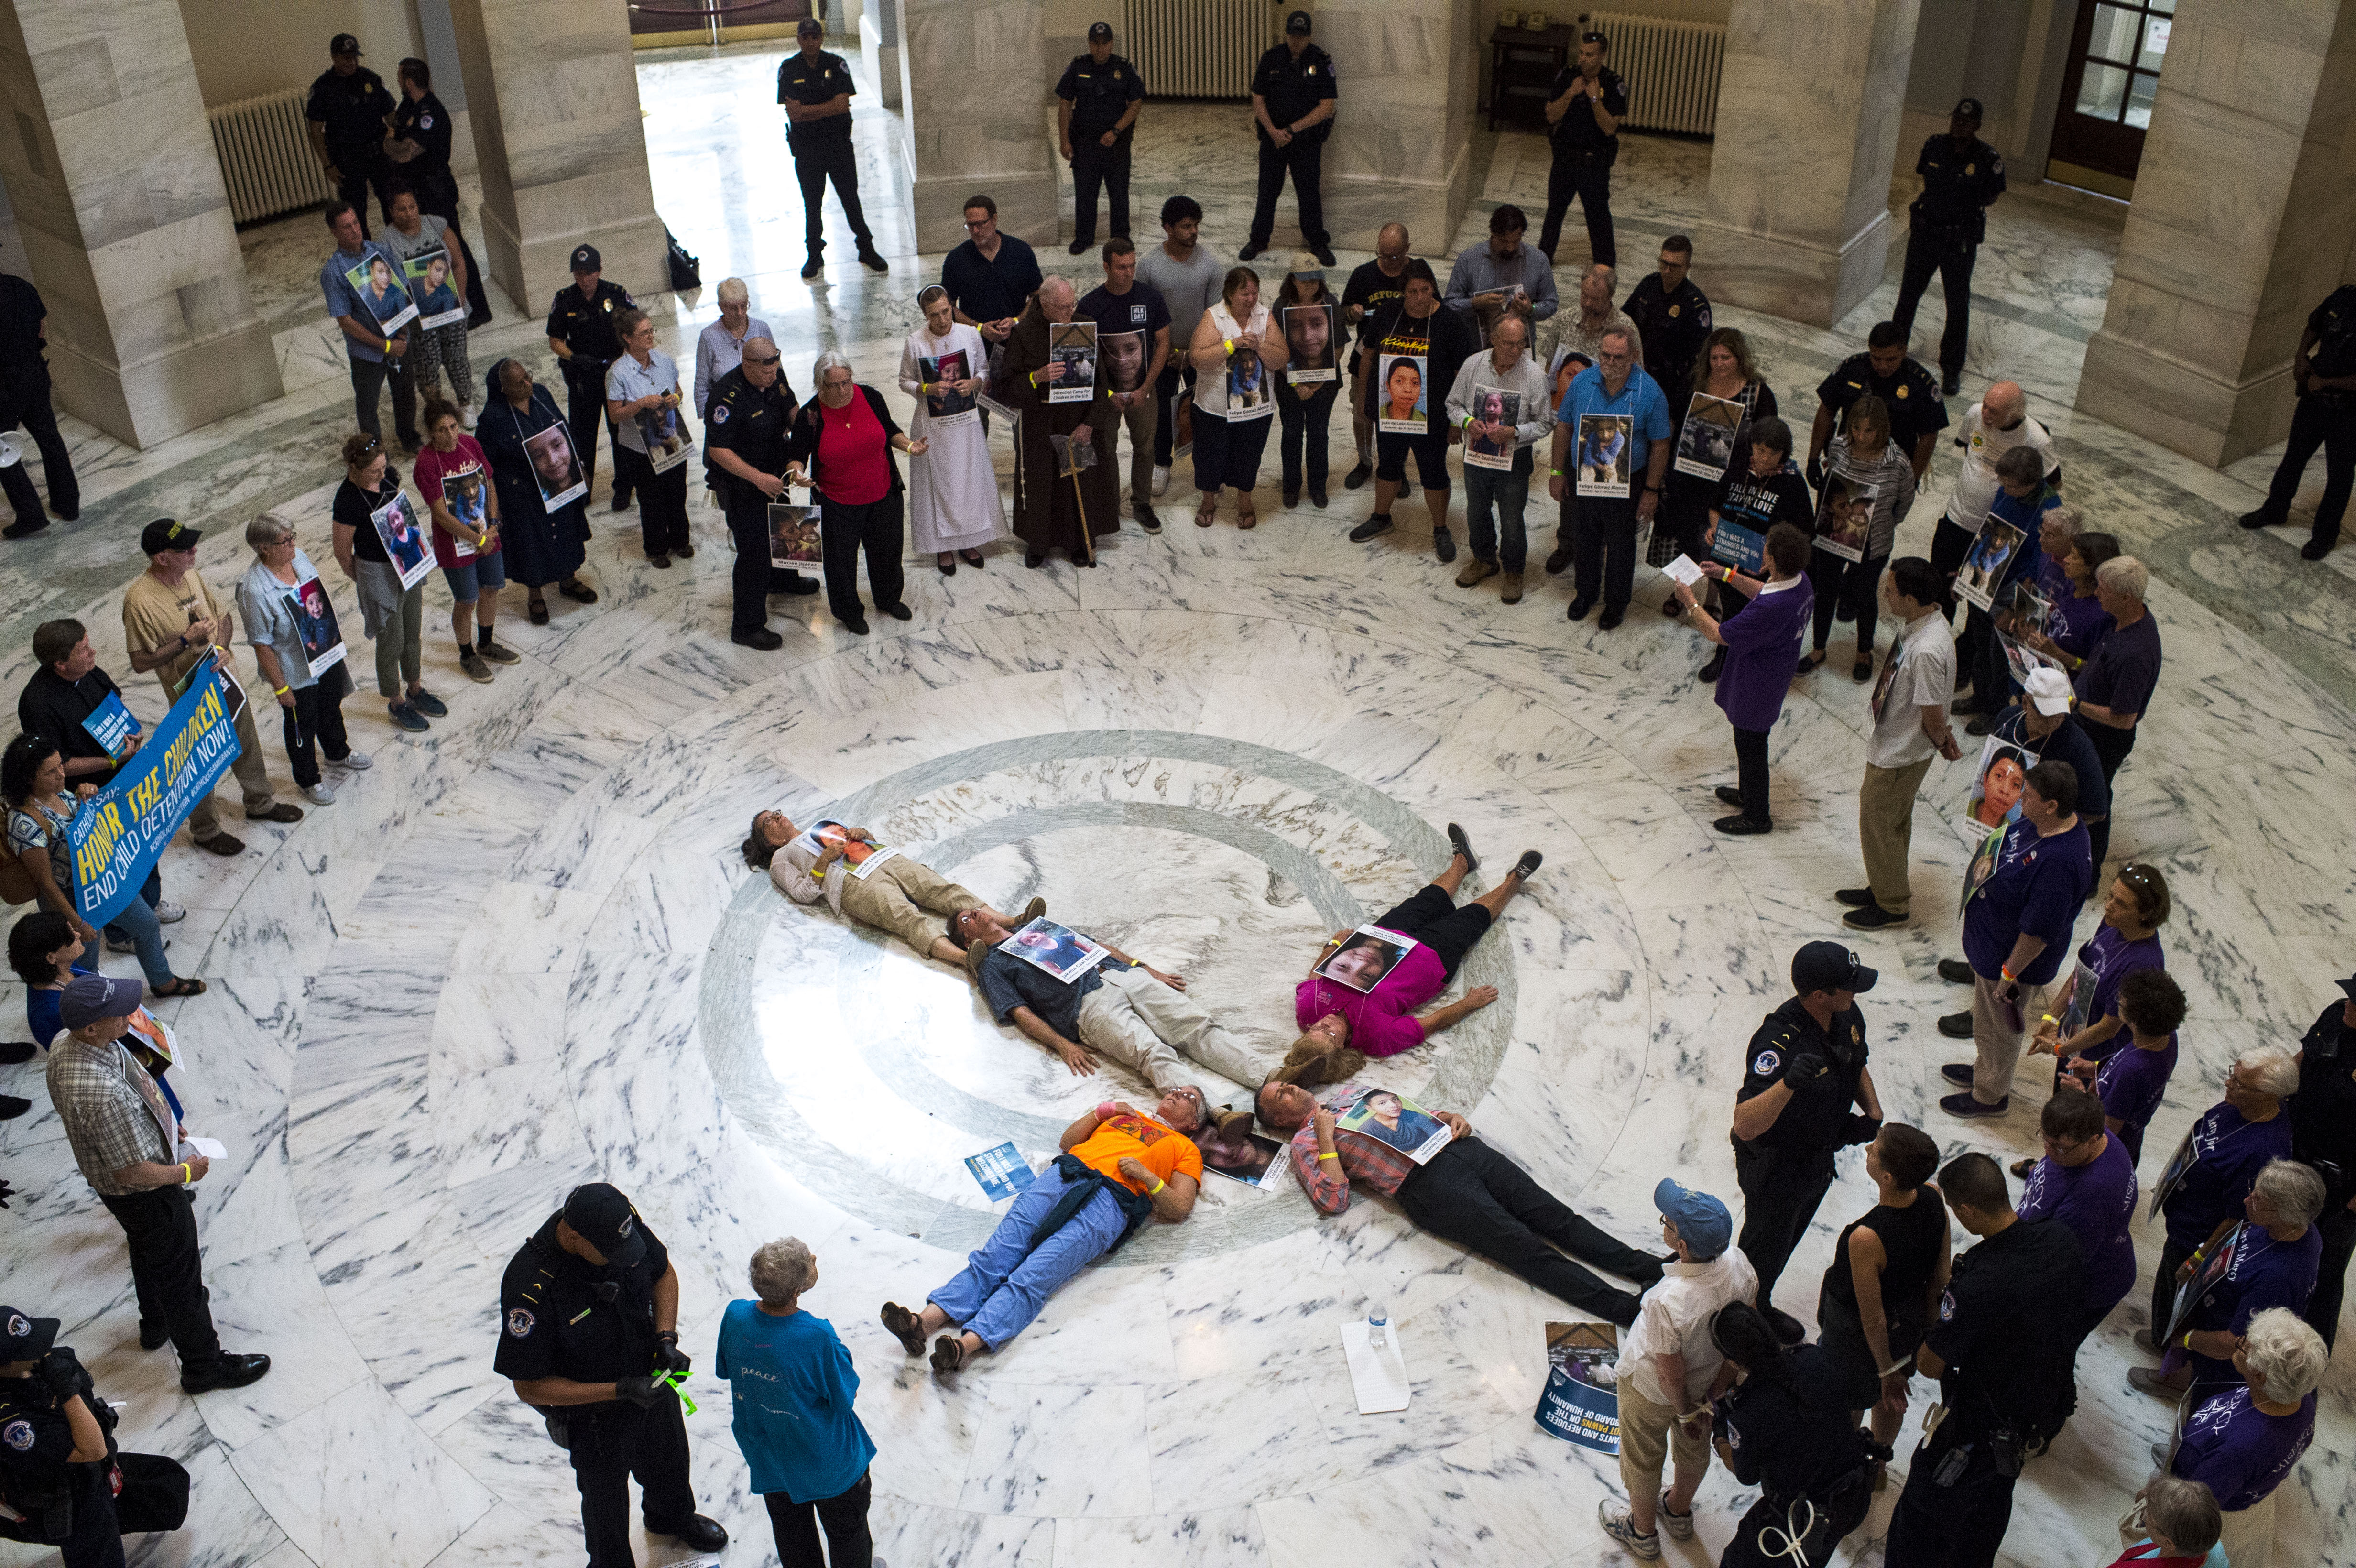 70 Catholics arrested in D.C. protest over Trump immigration policies - The Washington Post